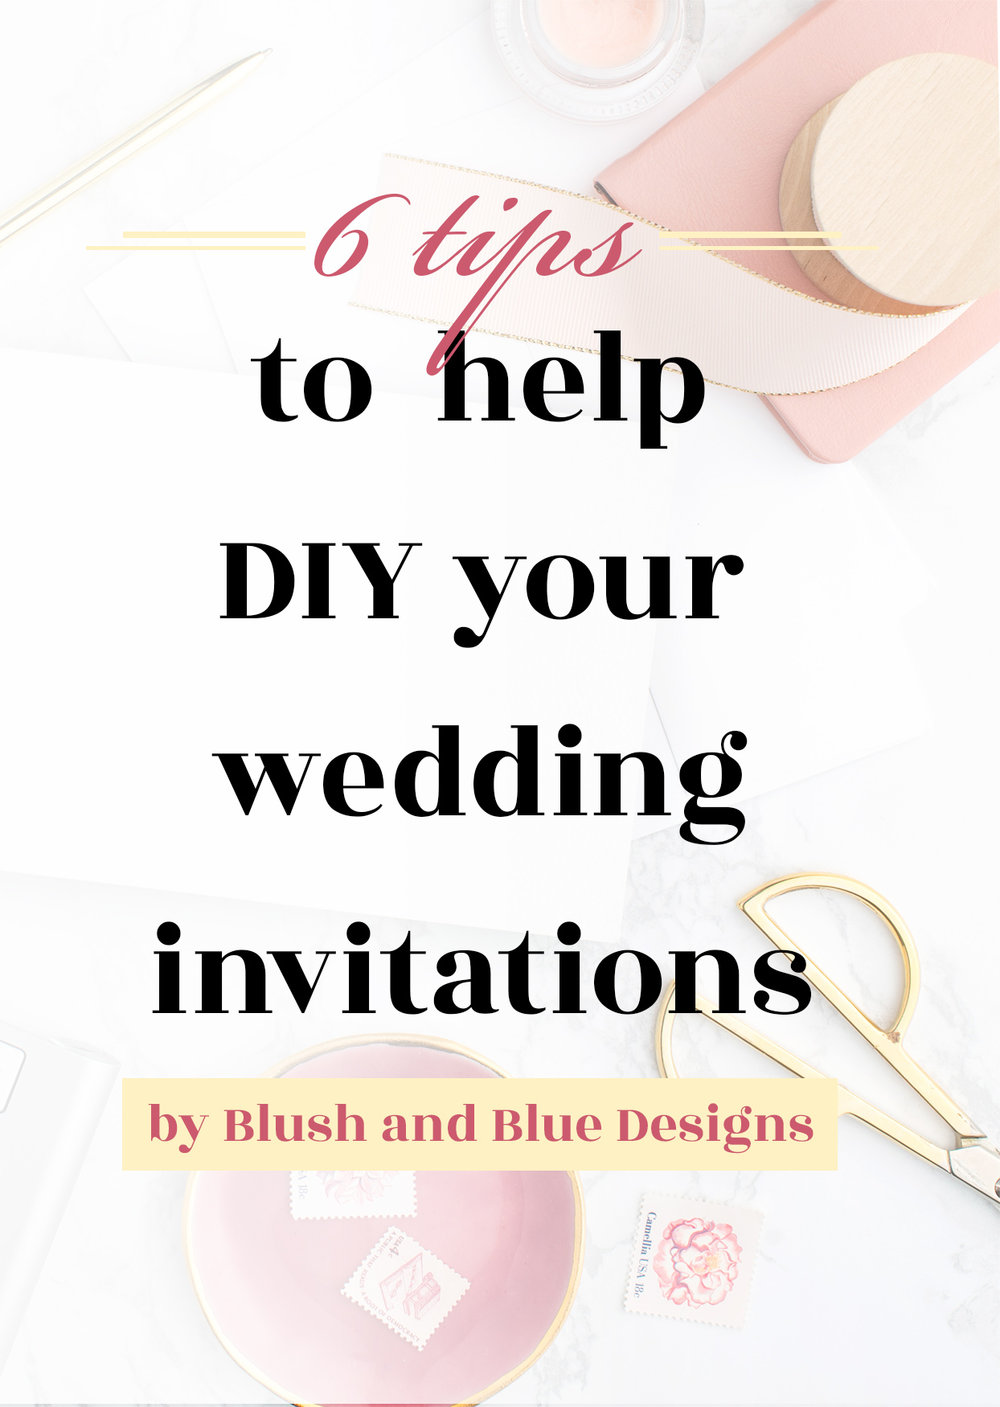 6 tips to help with your diy wedding invitations blush blue 6 tips to help diy your wedding invitations blush and blue designs professional studio tips stopboris Image collections